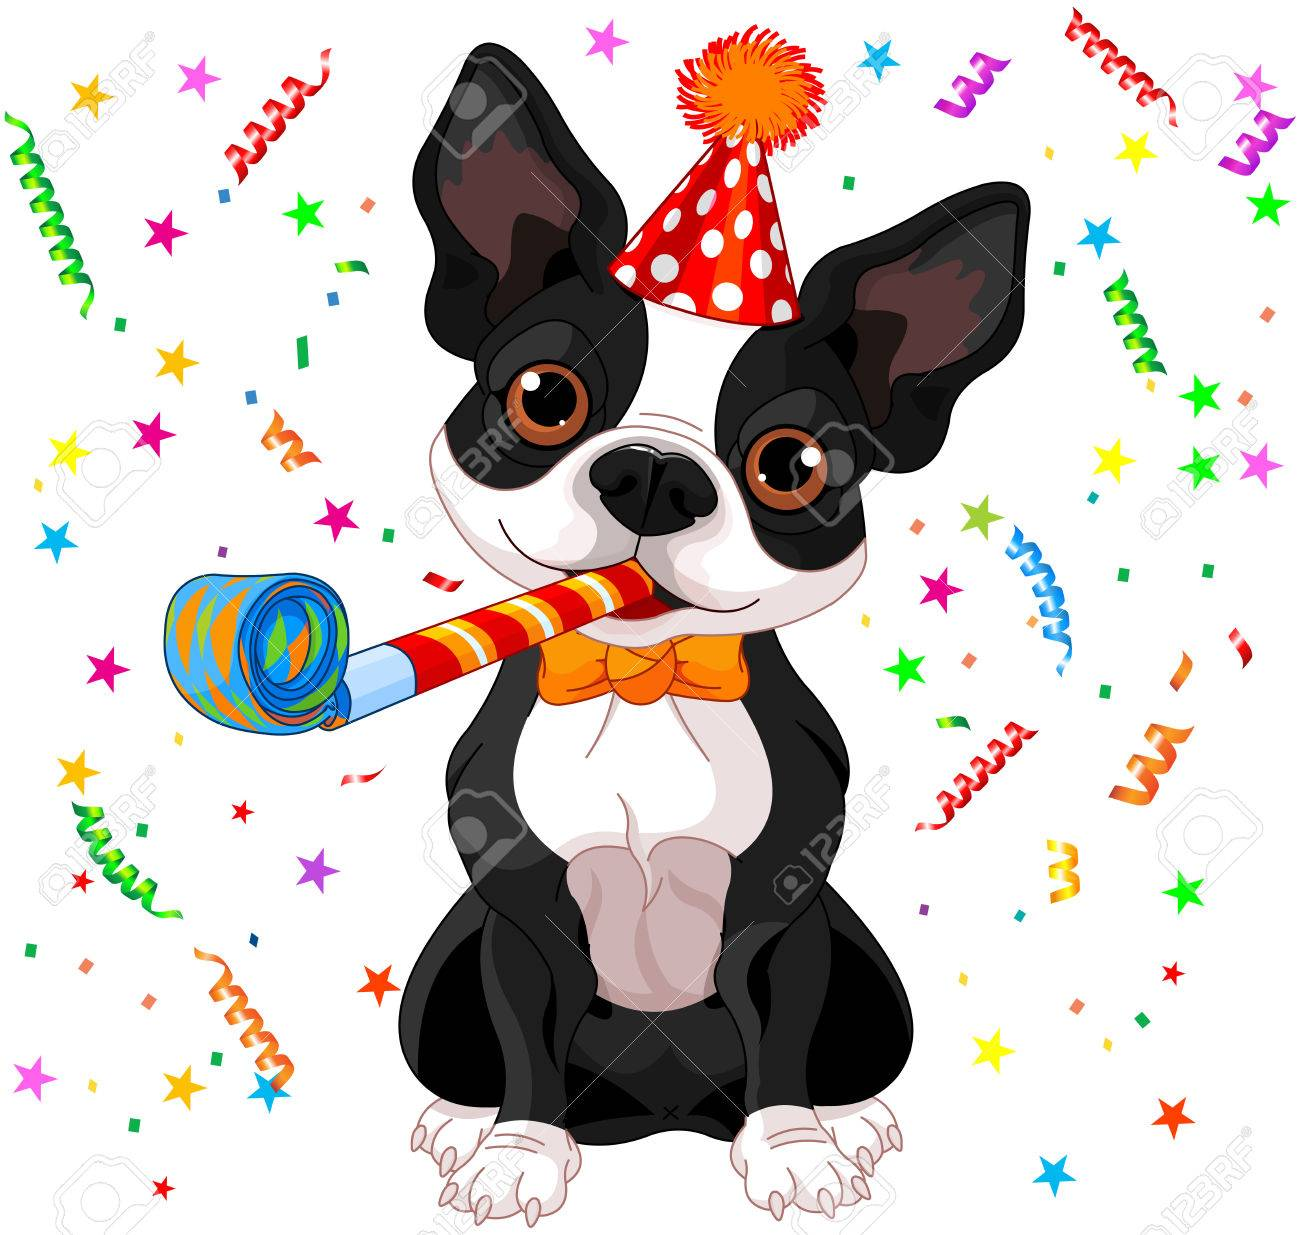 Entretien maison / matériels canins 35588778-illustration-of-cute-boston-terrier-celebrating